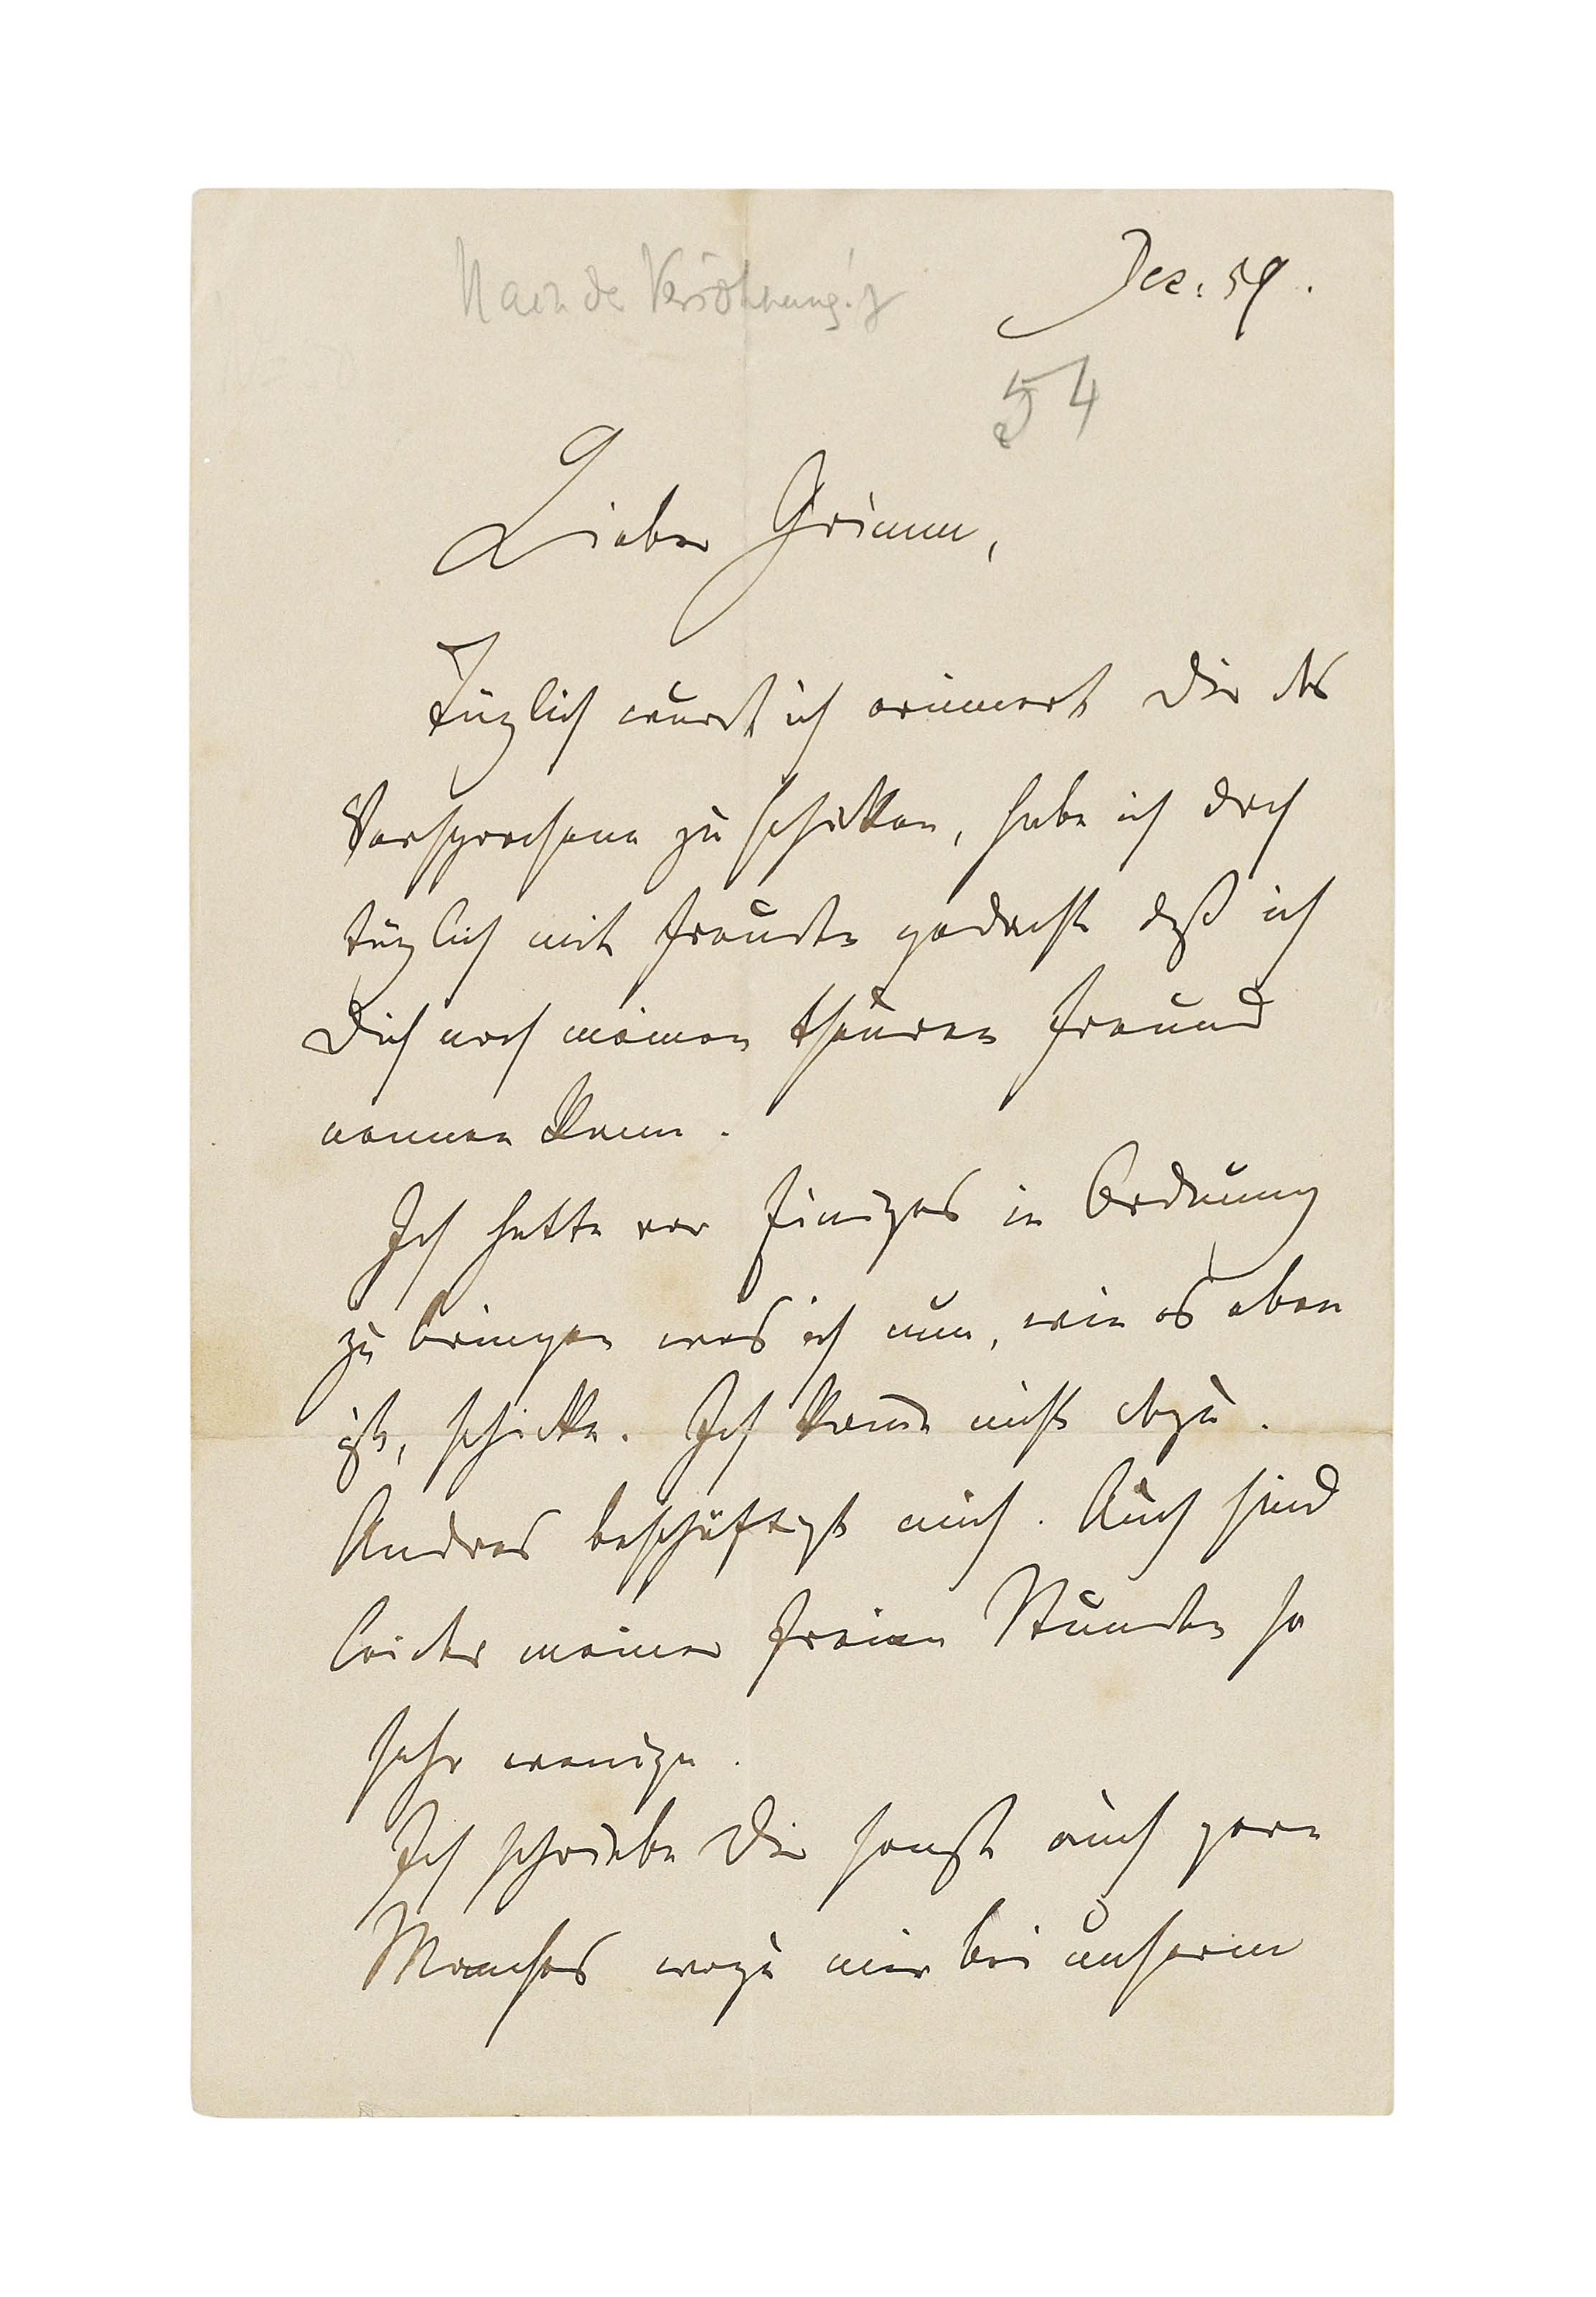 BRAHMS, Johannes (1833-1897). Autograph letter signed ('Johannes') to [his friend Julius Otto] Grimm, n.p. [Hamburg], December 1859, a letter of warm friendship referring to a promised parcel of compositions he has been daily reminded to send, complaining of his lack of free time, mentioning his intention to write things that he could not say during their last meeting, and asking Grimm's opinion on the compositions, 2 pages, 8vo, bifolium. Provenance: Liepmannsohn, Berlin, 1928; collection of Dr Fritz and Dita Callomon, and thence by gift, 1950.